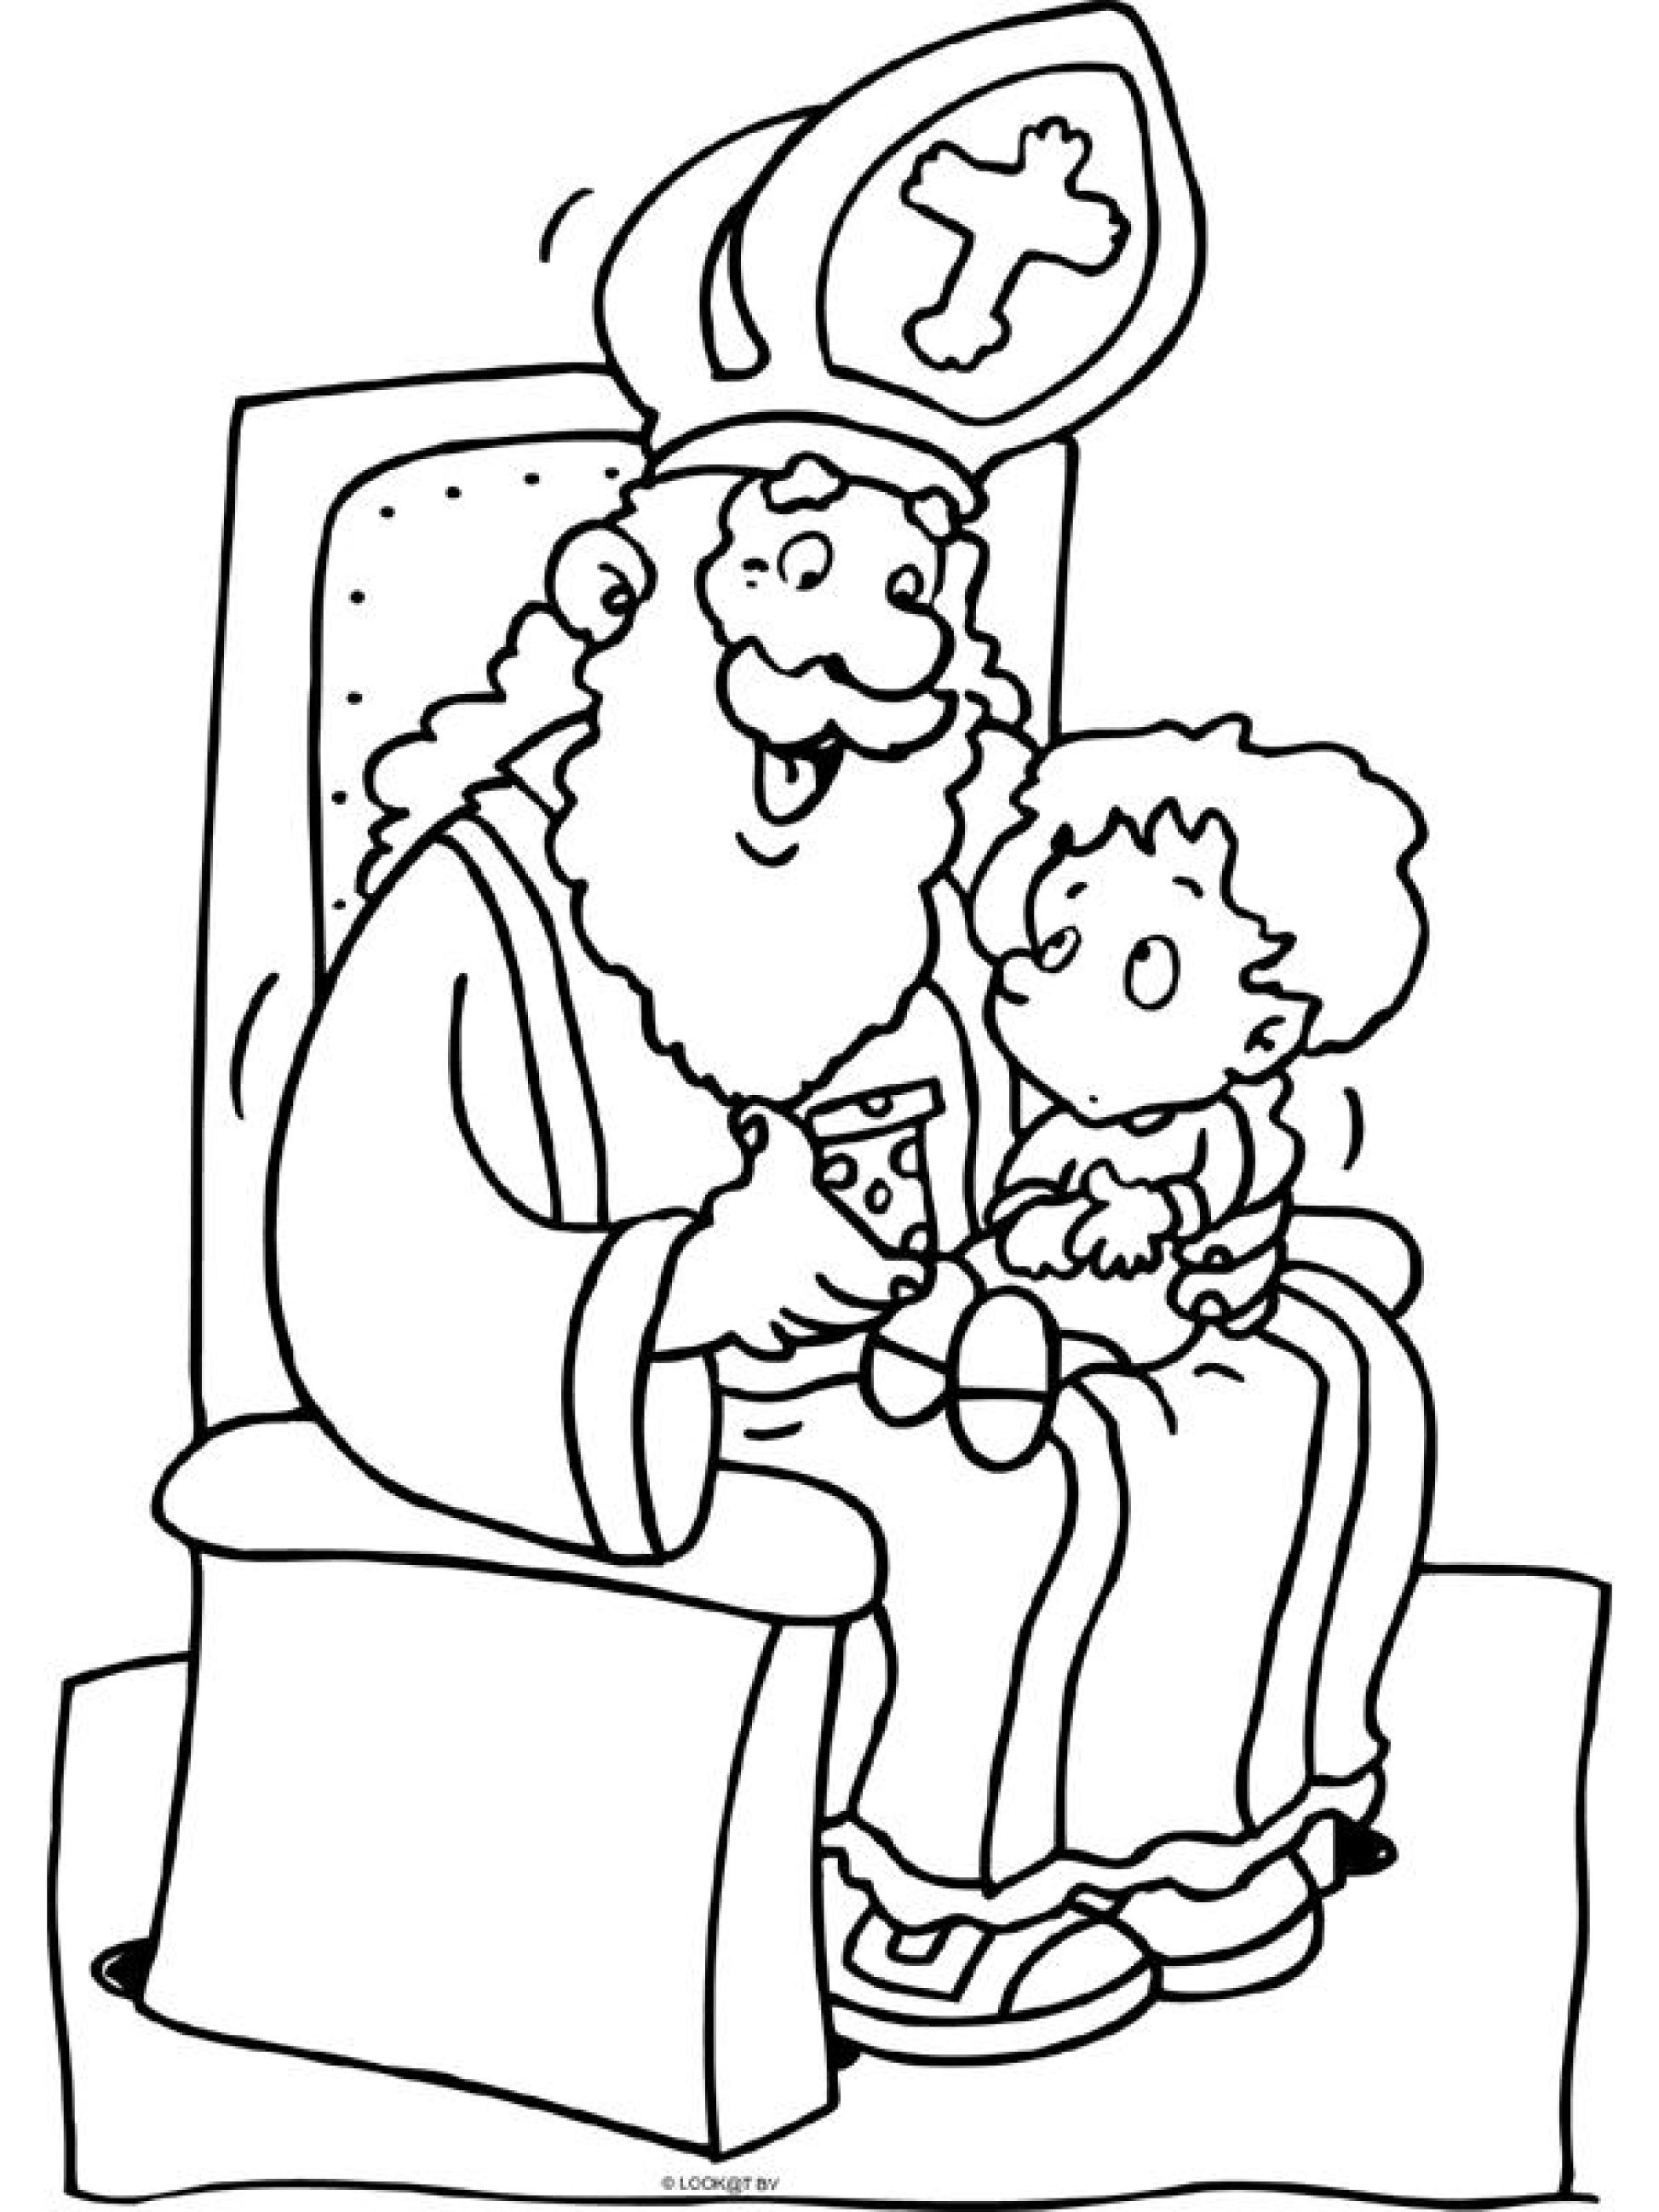 sinterklaas coloring pages learning how to read